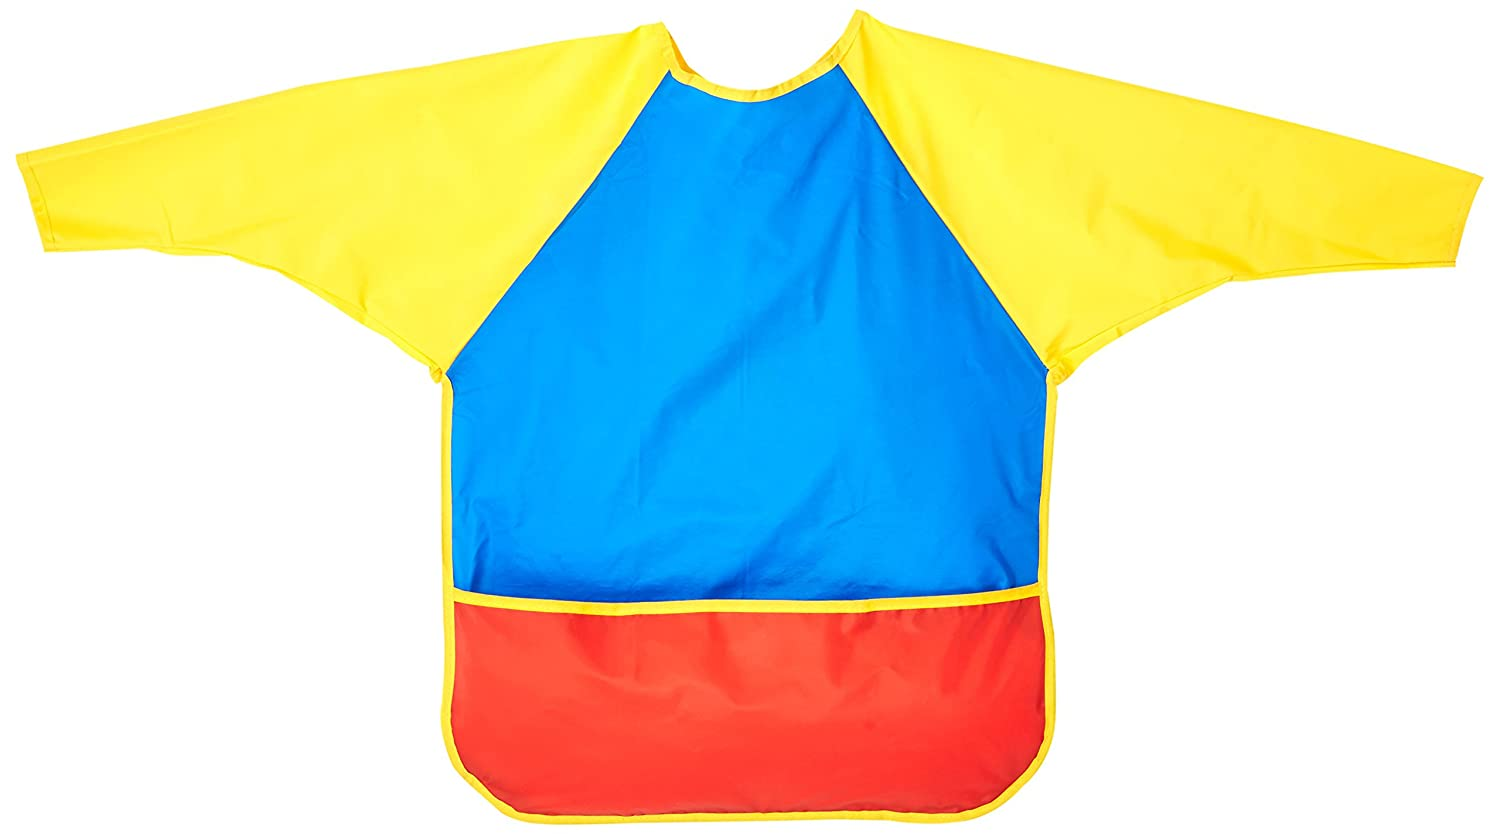 School Smart Full Protection Vinyl Smock, 3 to 6 Years, Multiple Colors